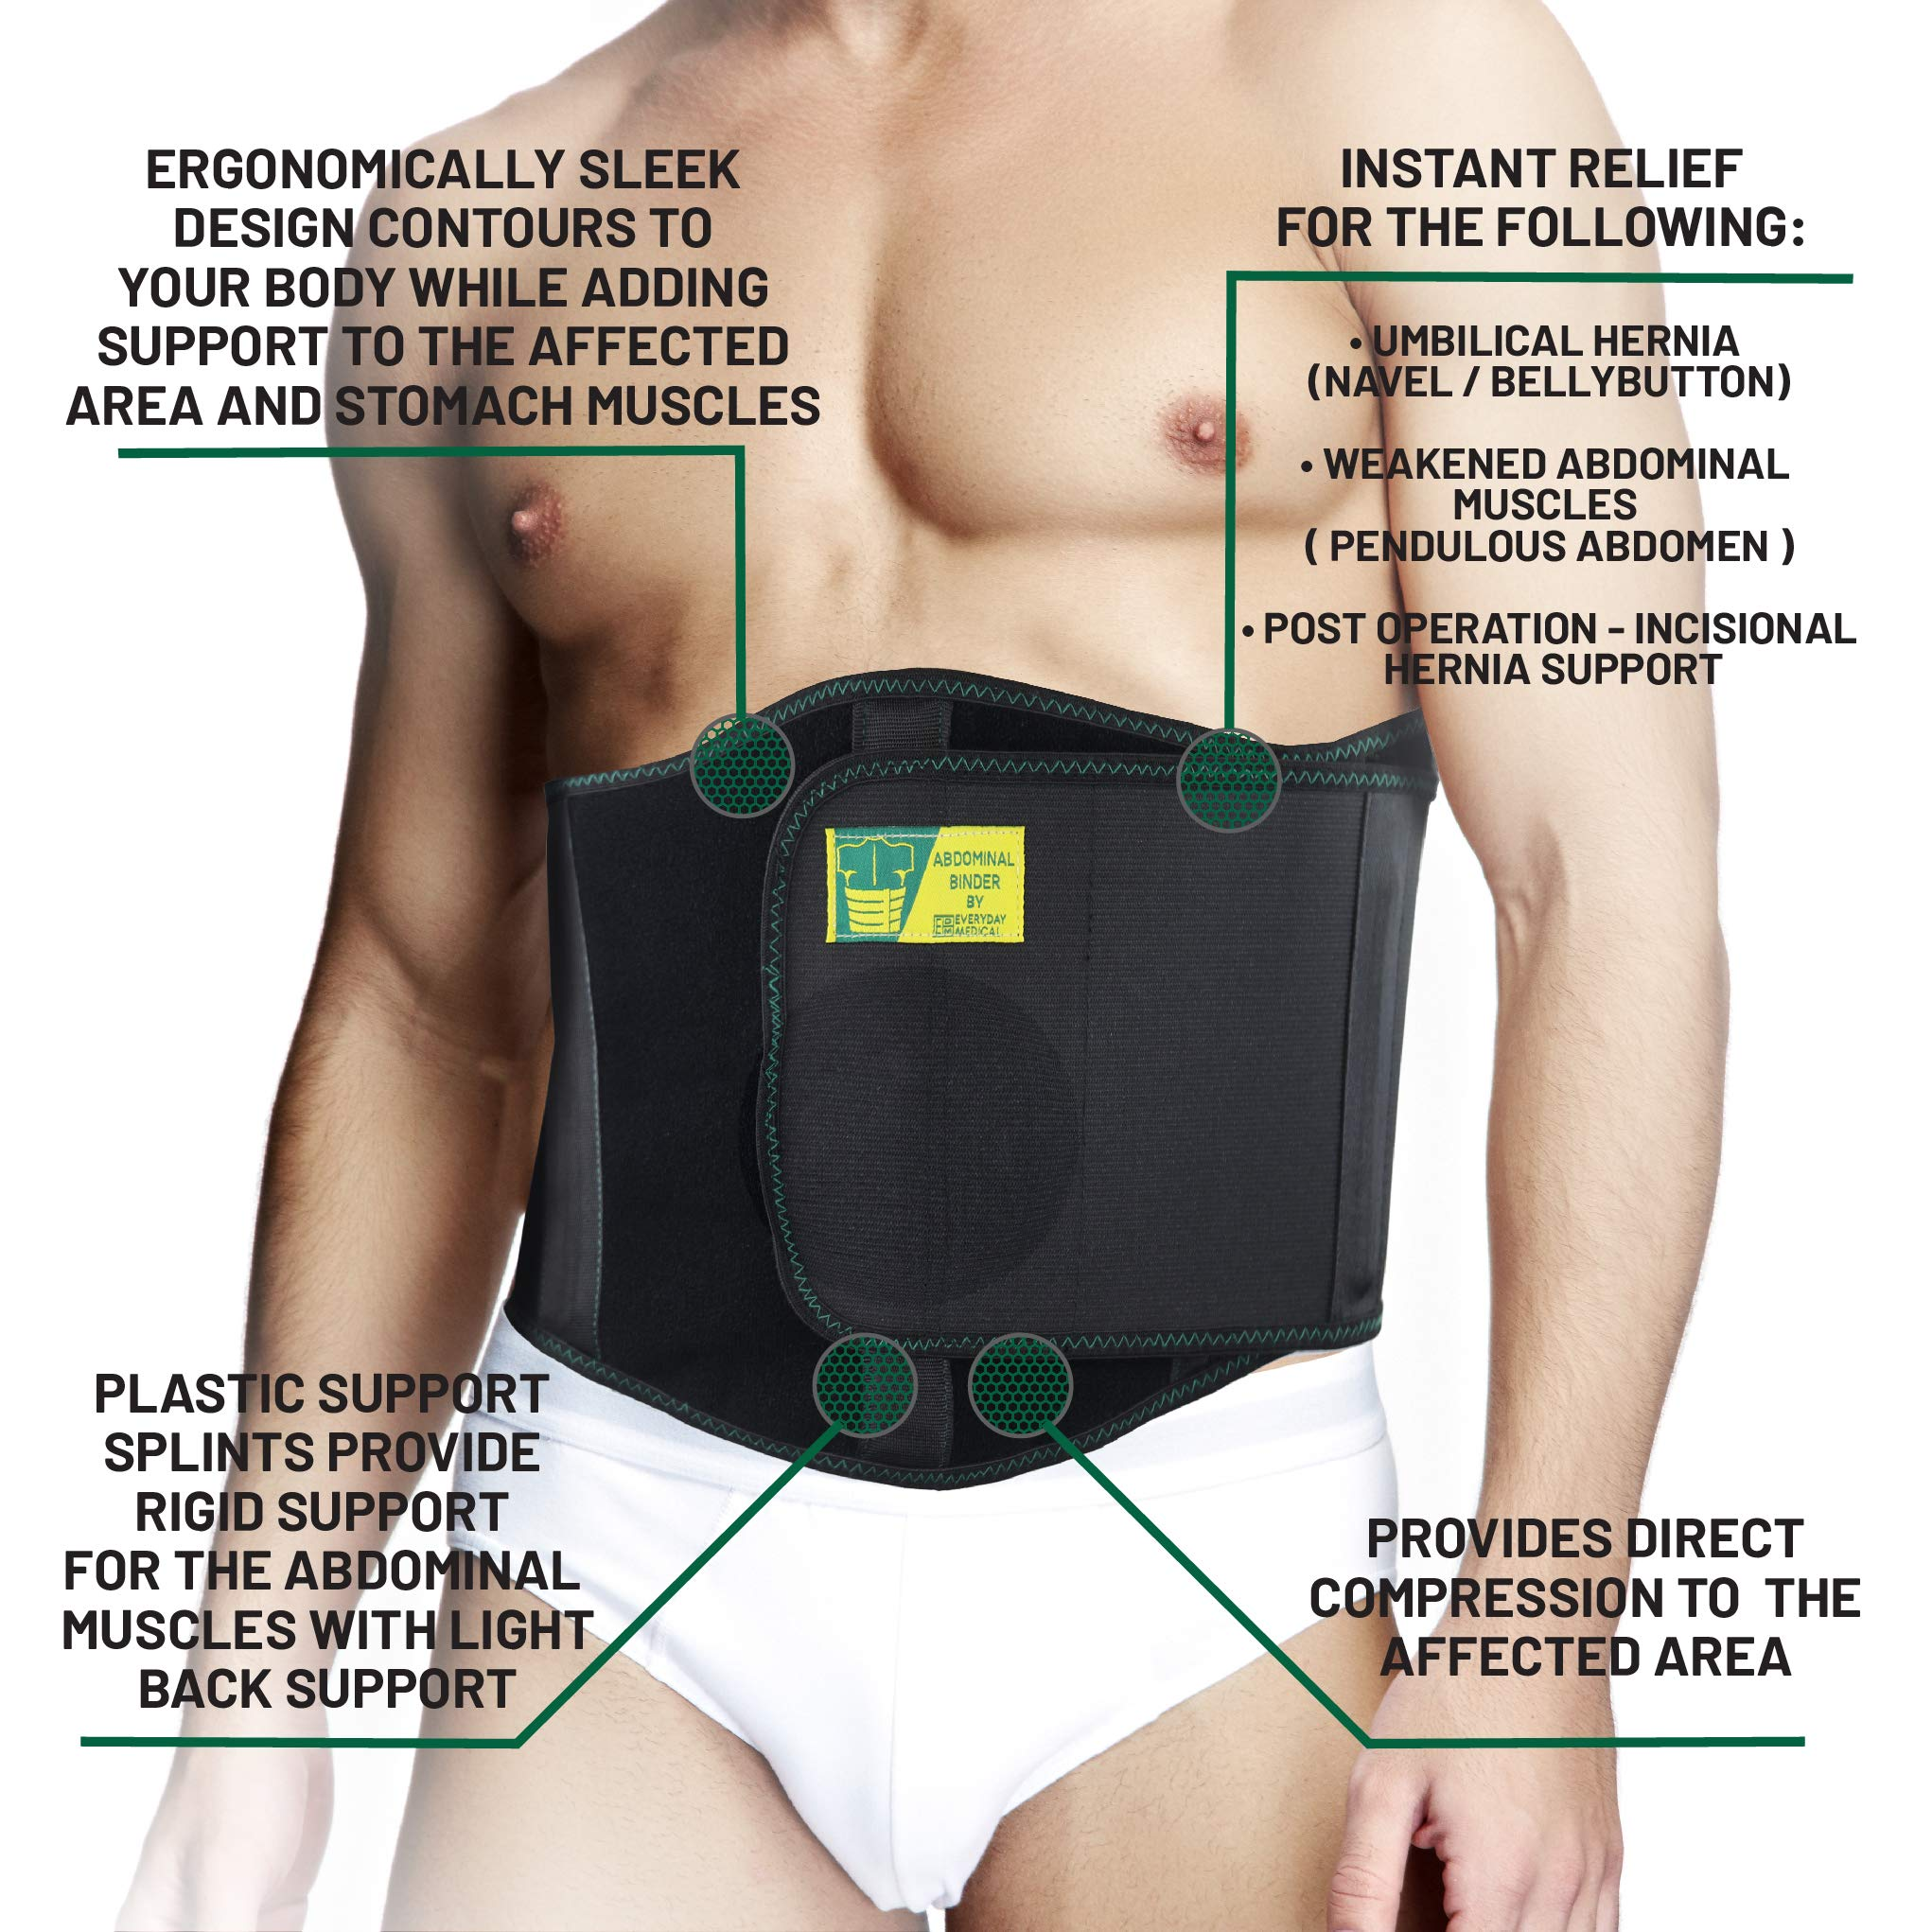 Ergonomic Umbilical Hernia Belt – Abdominal Binder for Hernia Support – Umbilical Navel Hernia Strap with Compression Pad – Ventral Hernia Support for Men and Women - Large/XXL Plus Size (42-57 in) by Everyday Medical (Image #2)